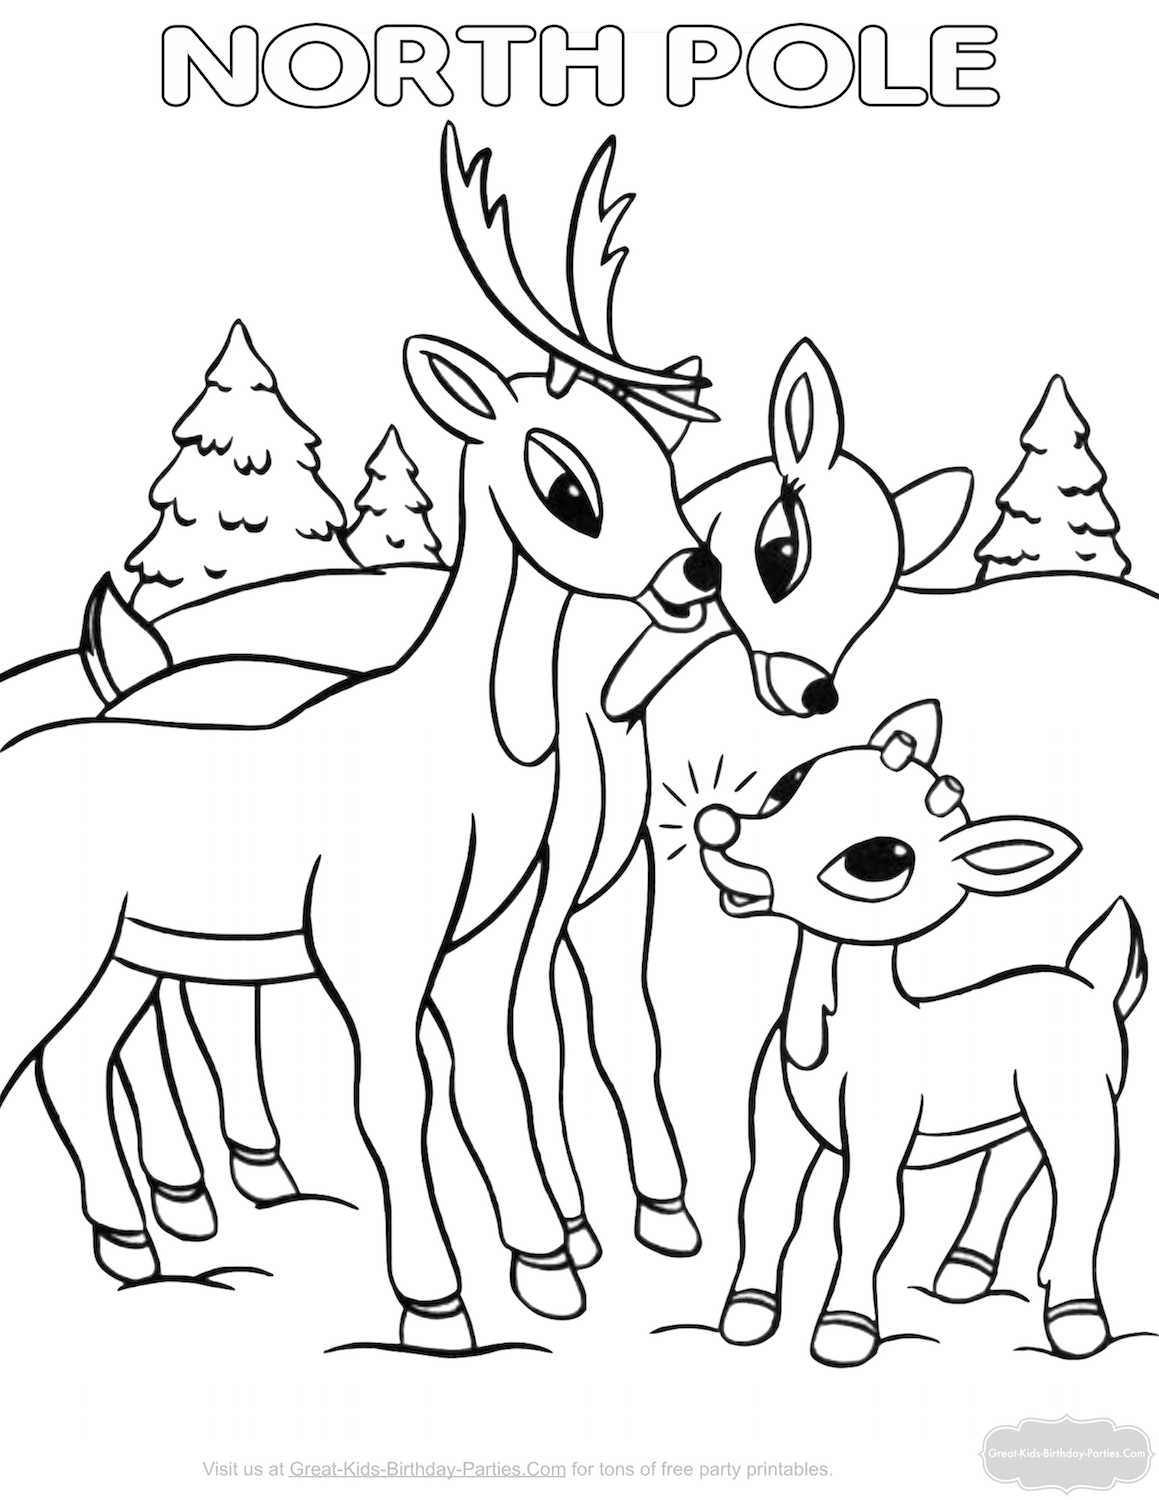 Rudolph Coloring Pages The Christmas Holiday Season Is Such A Cheerful Children Are Filled With Excitement And Looking Forward To Big Day